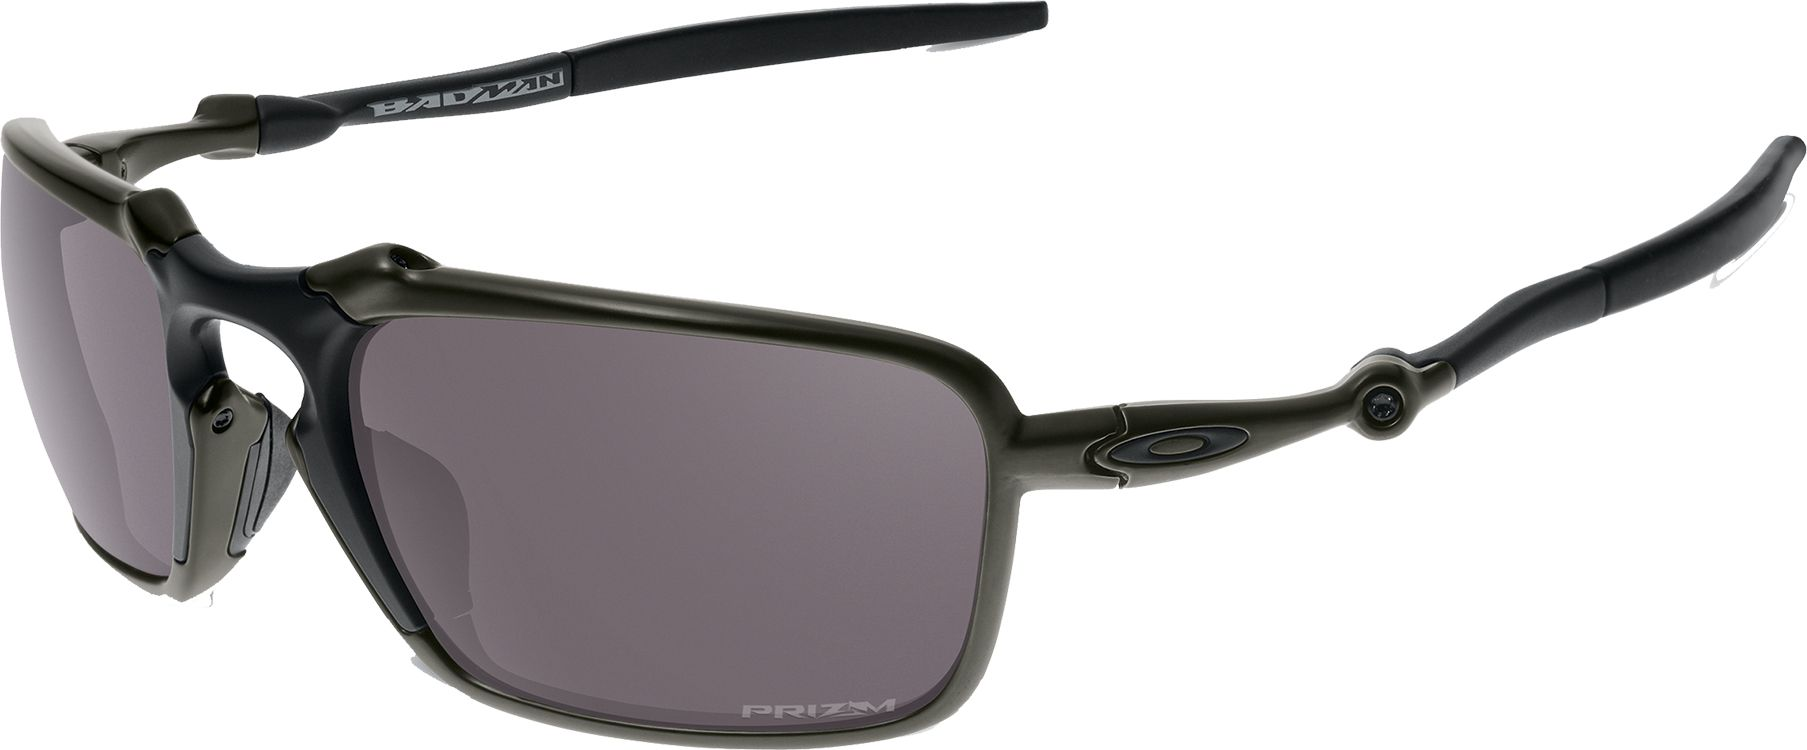 oakley badman sunglasses